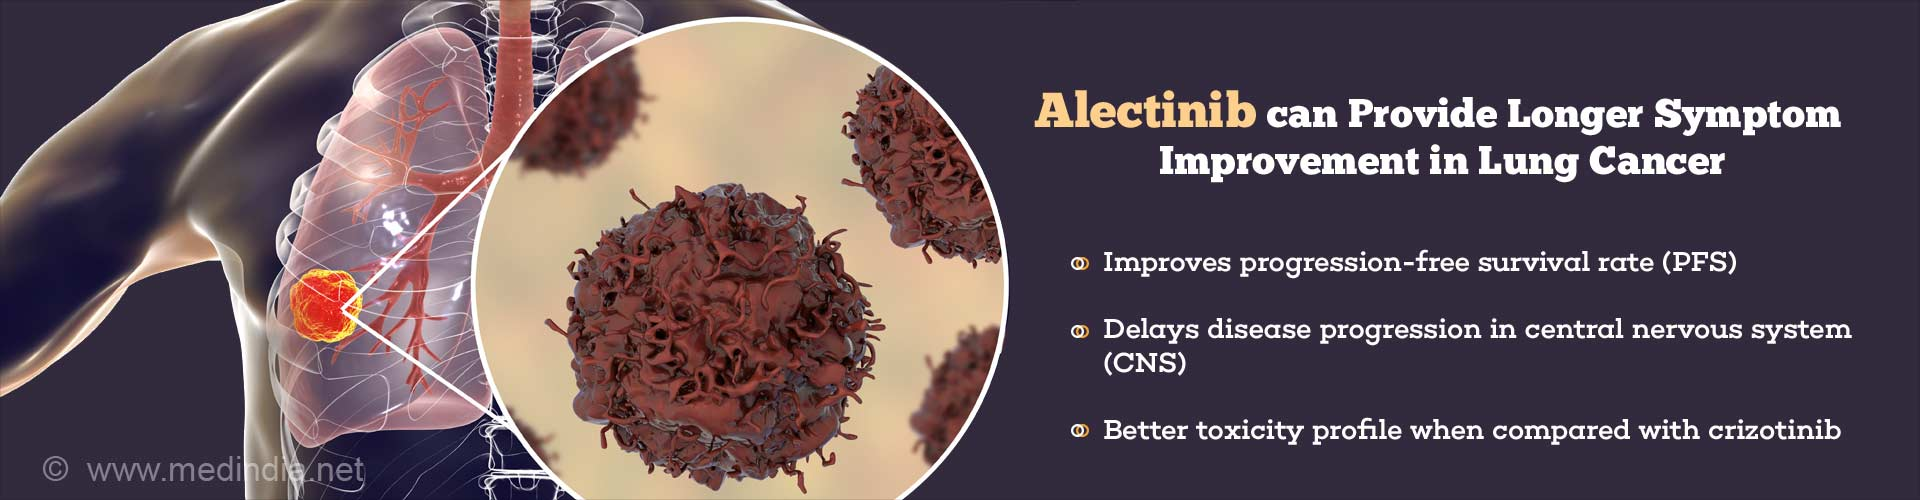 alectinib can provide longer symptom improvement in lung cancer - improves progression-free survival rate (PFS) - delays disease progression in central nervous system (CNS) - better toxicity profile when compared with crizitinib